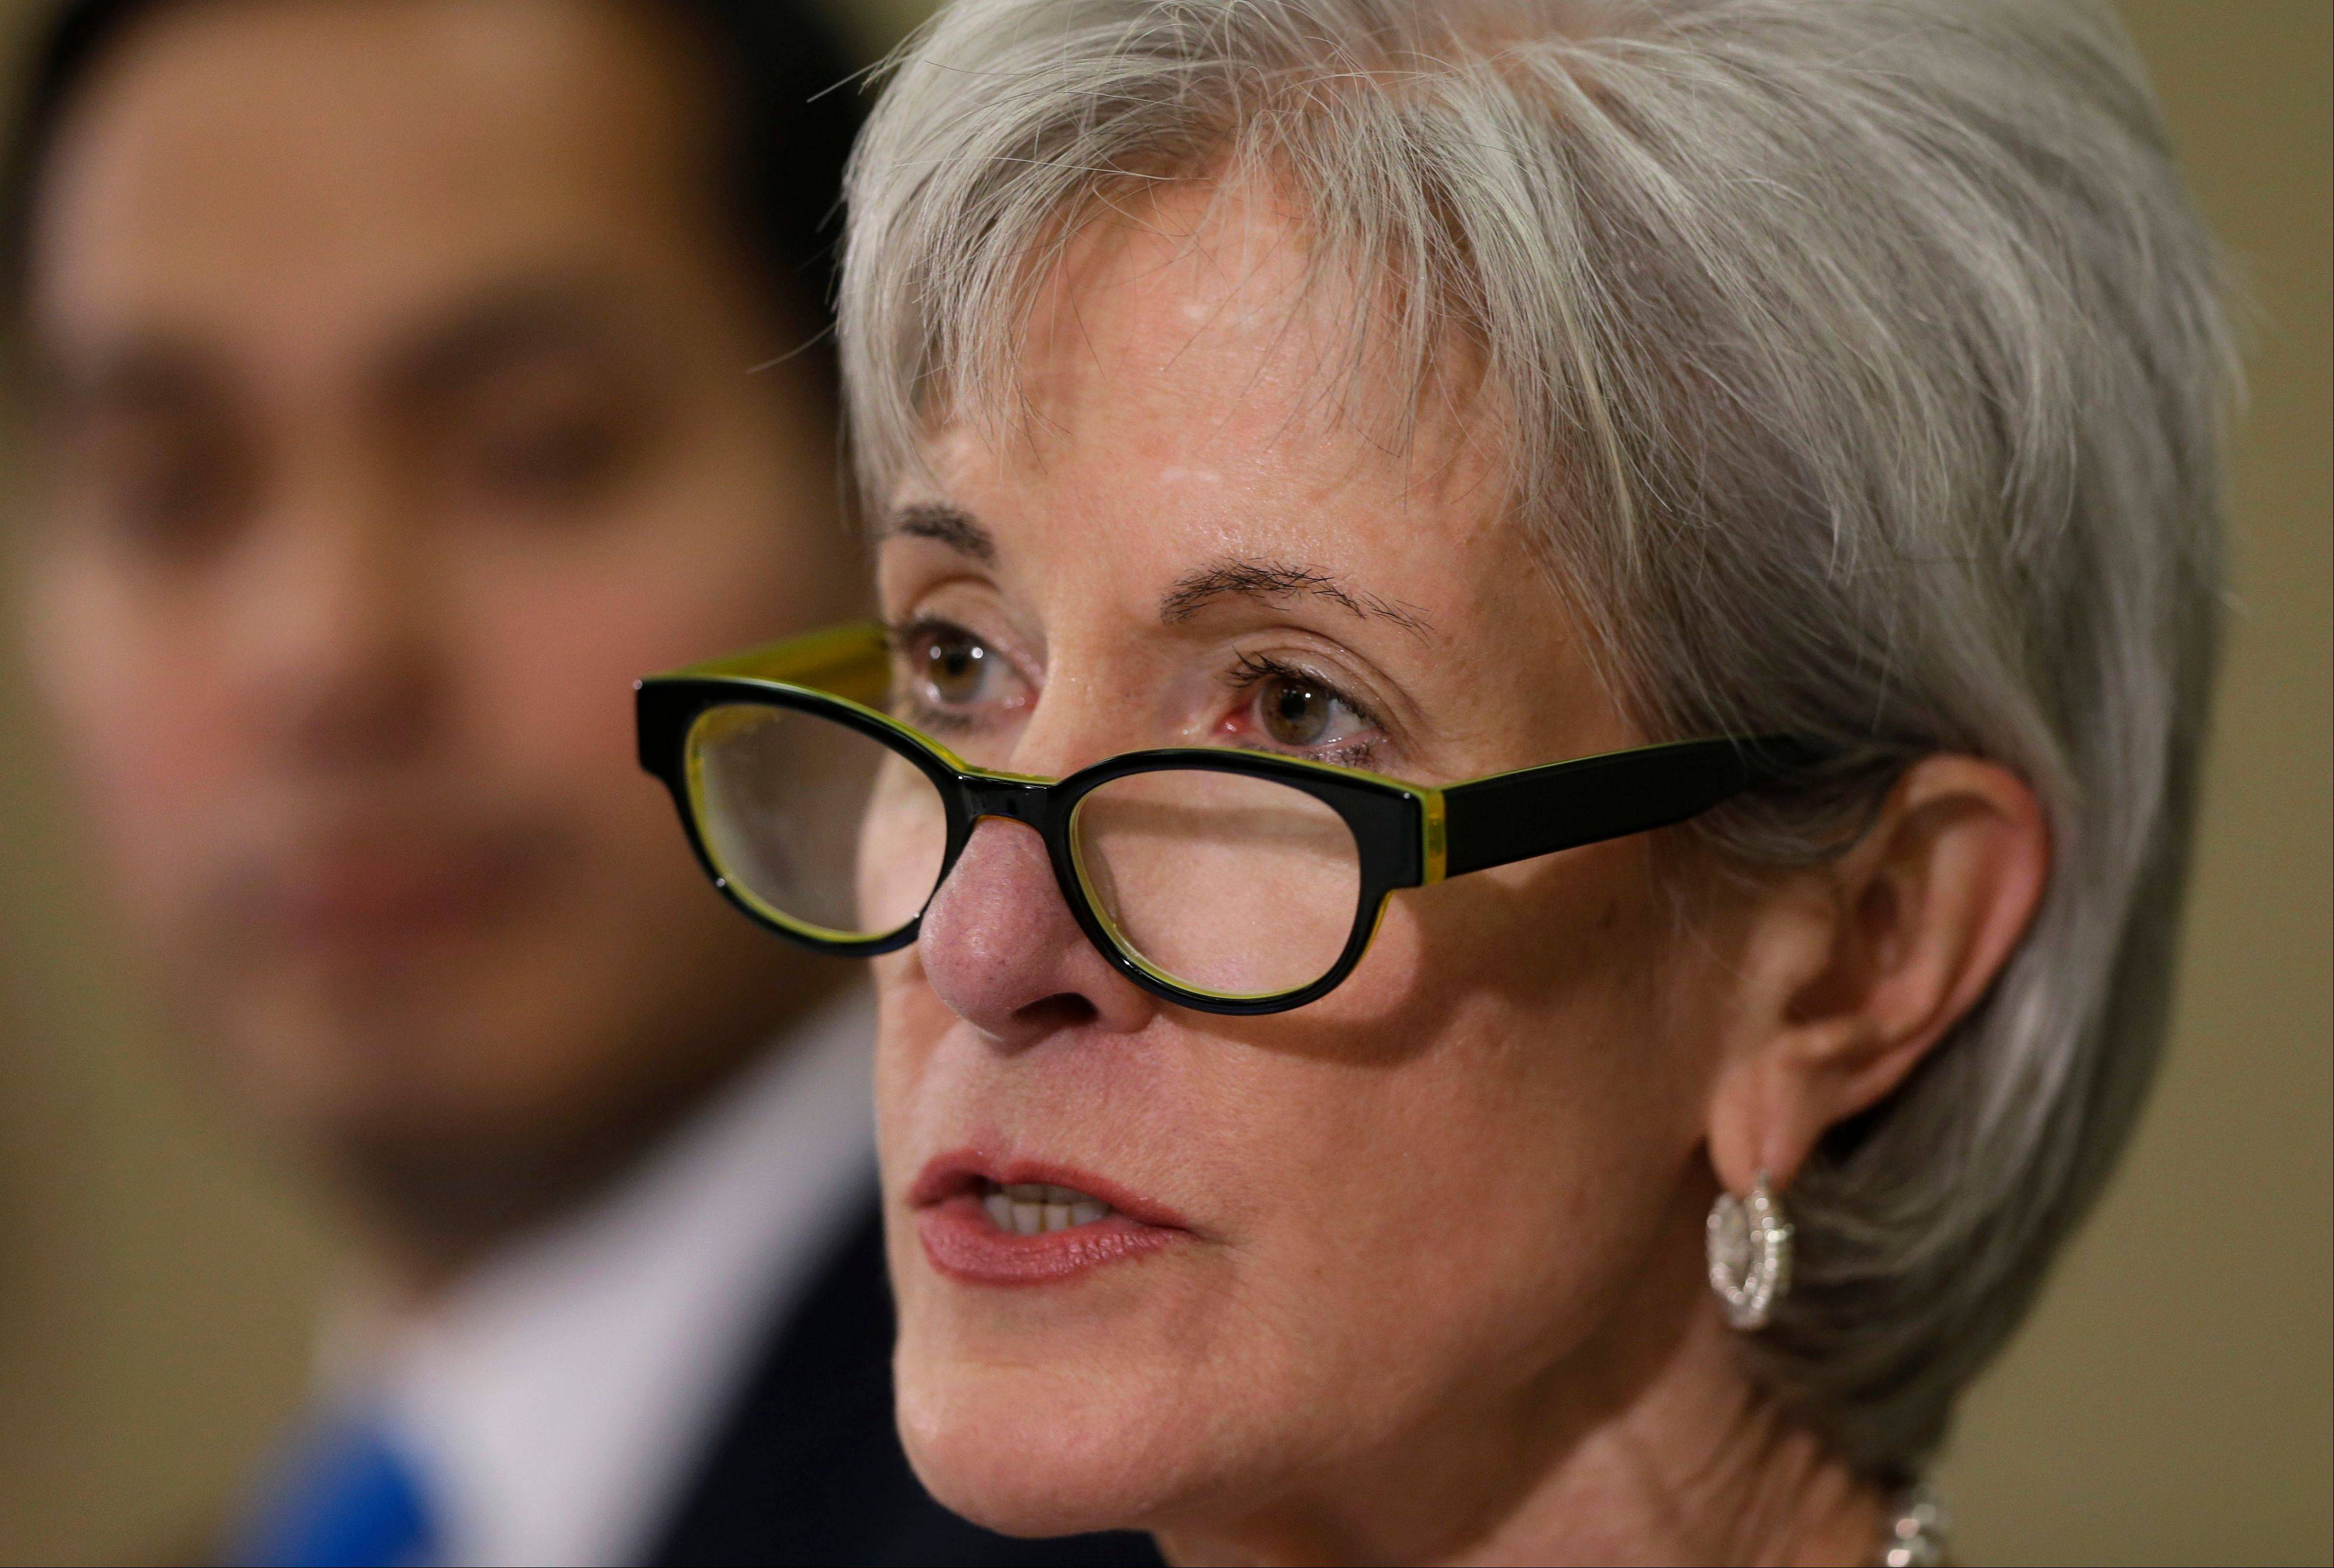 Republicans plan to seek answers from Health and Human Services Secretary Kathleen Sebelius on the Obama administration's troubled start for its health care website to buy insurance, and are raising concerns about the privacy of information that applicants submit under the new system.